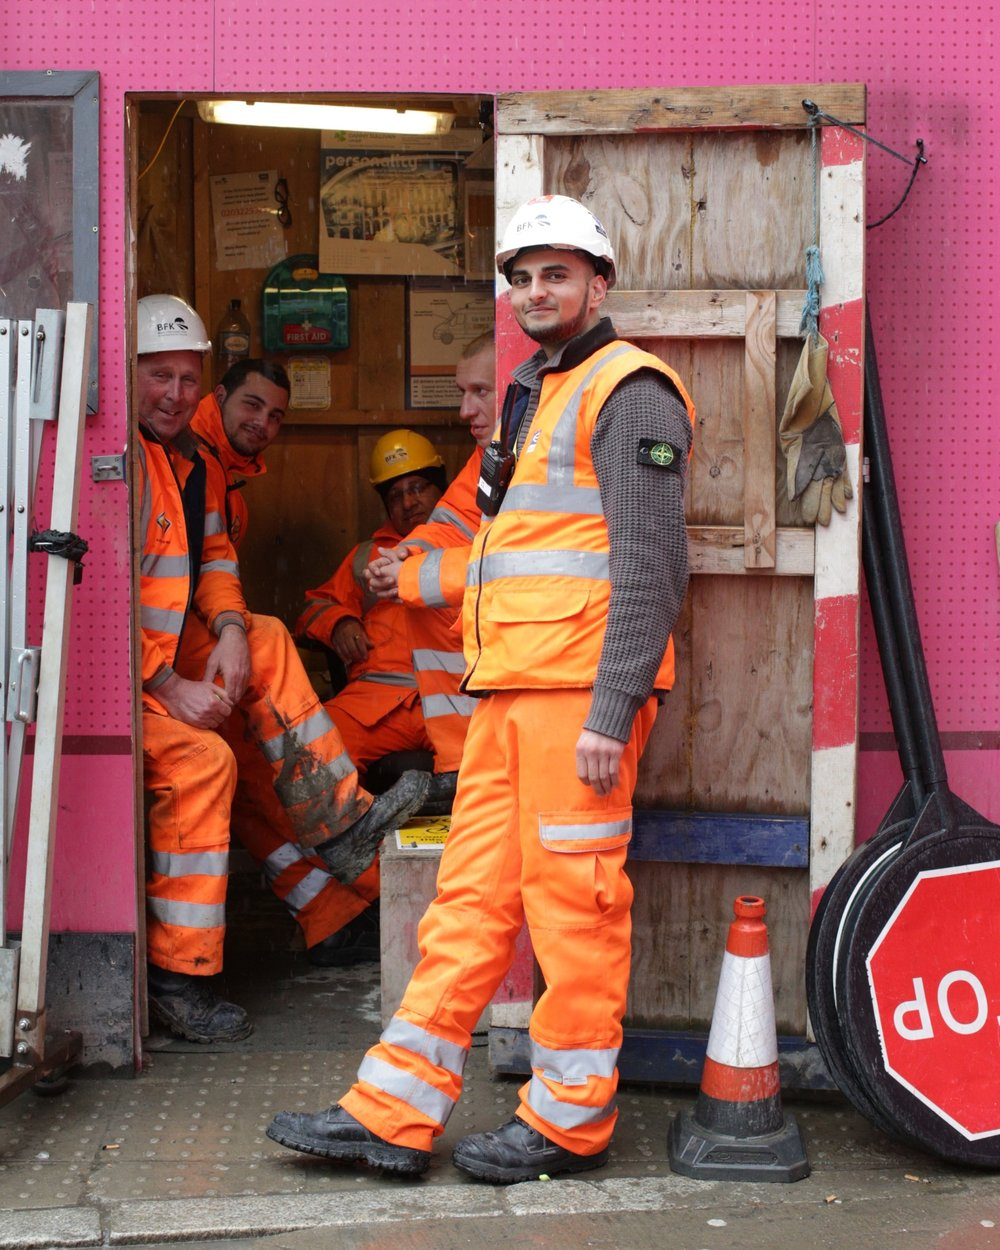 It was pouring down as I walked along Tottenham Court Road and saw Hussain, Dervis, George, Seol & Anil sheltering from the rain. They looked great in their orange flouris all sat together in a pink kiosk. If it wasn't raining they told me they'd be stopping traffic to let the lorries in and out of the construction site. They're were all so friendly and it soon turned into a mini photo shoot - they were really excited that I was going to send them copies of the photos because they're all friends on Facebook and wanted to share! They were really lovely guys and it turned into a mini photo shoot - theyeven took a photo of me with them all in the pink kiosk.